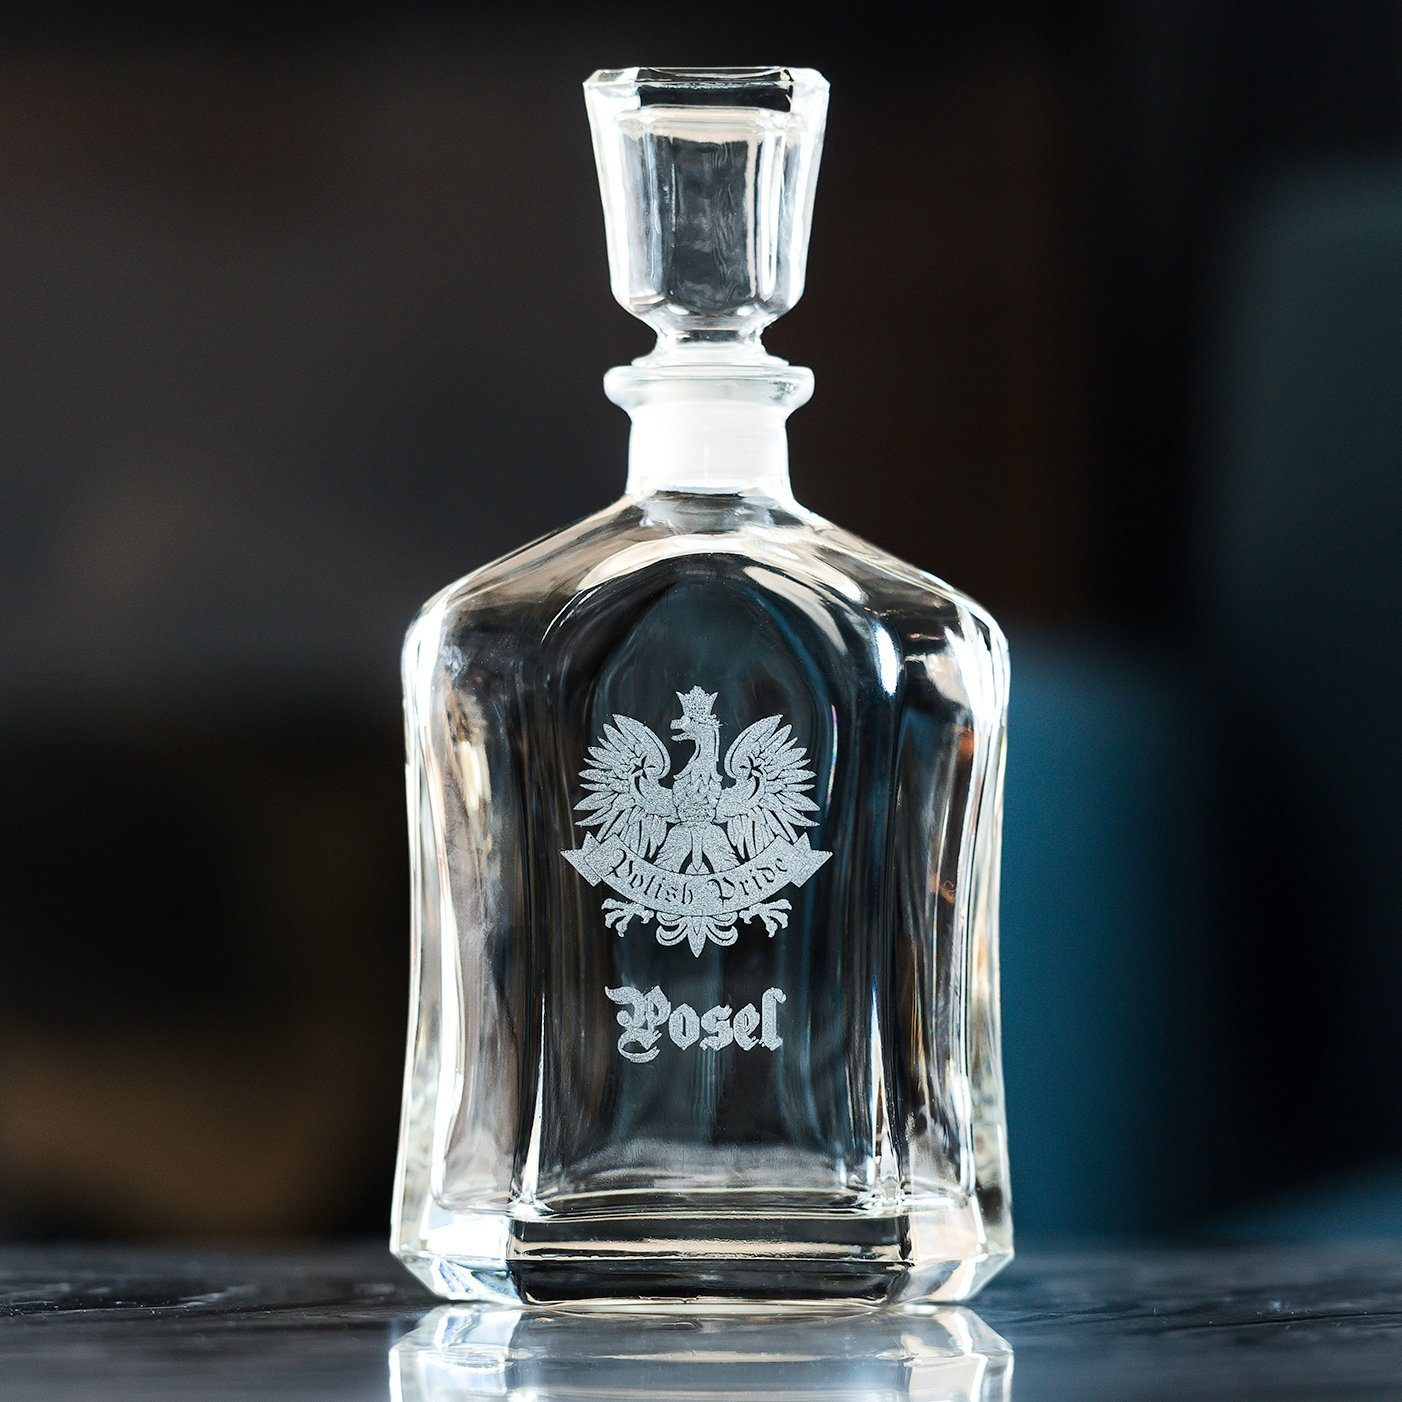 Personalized Whiskey Decanter Engraved Polish Pride Decanter Custom